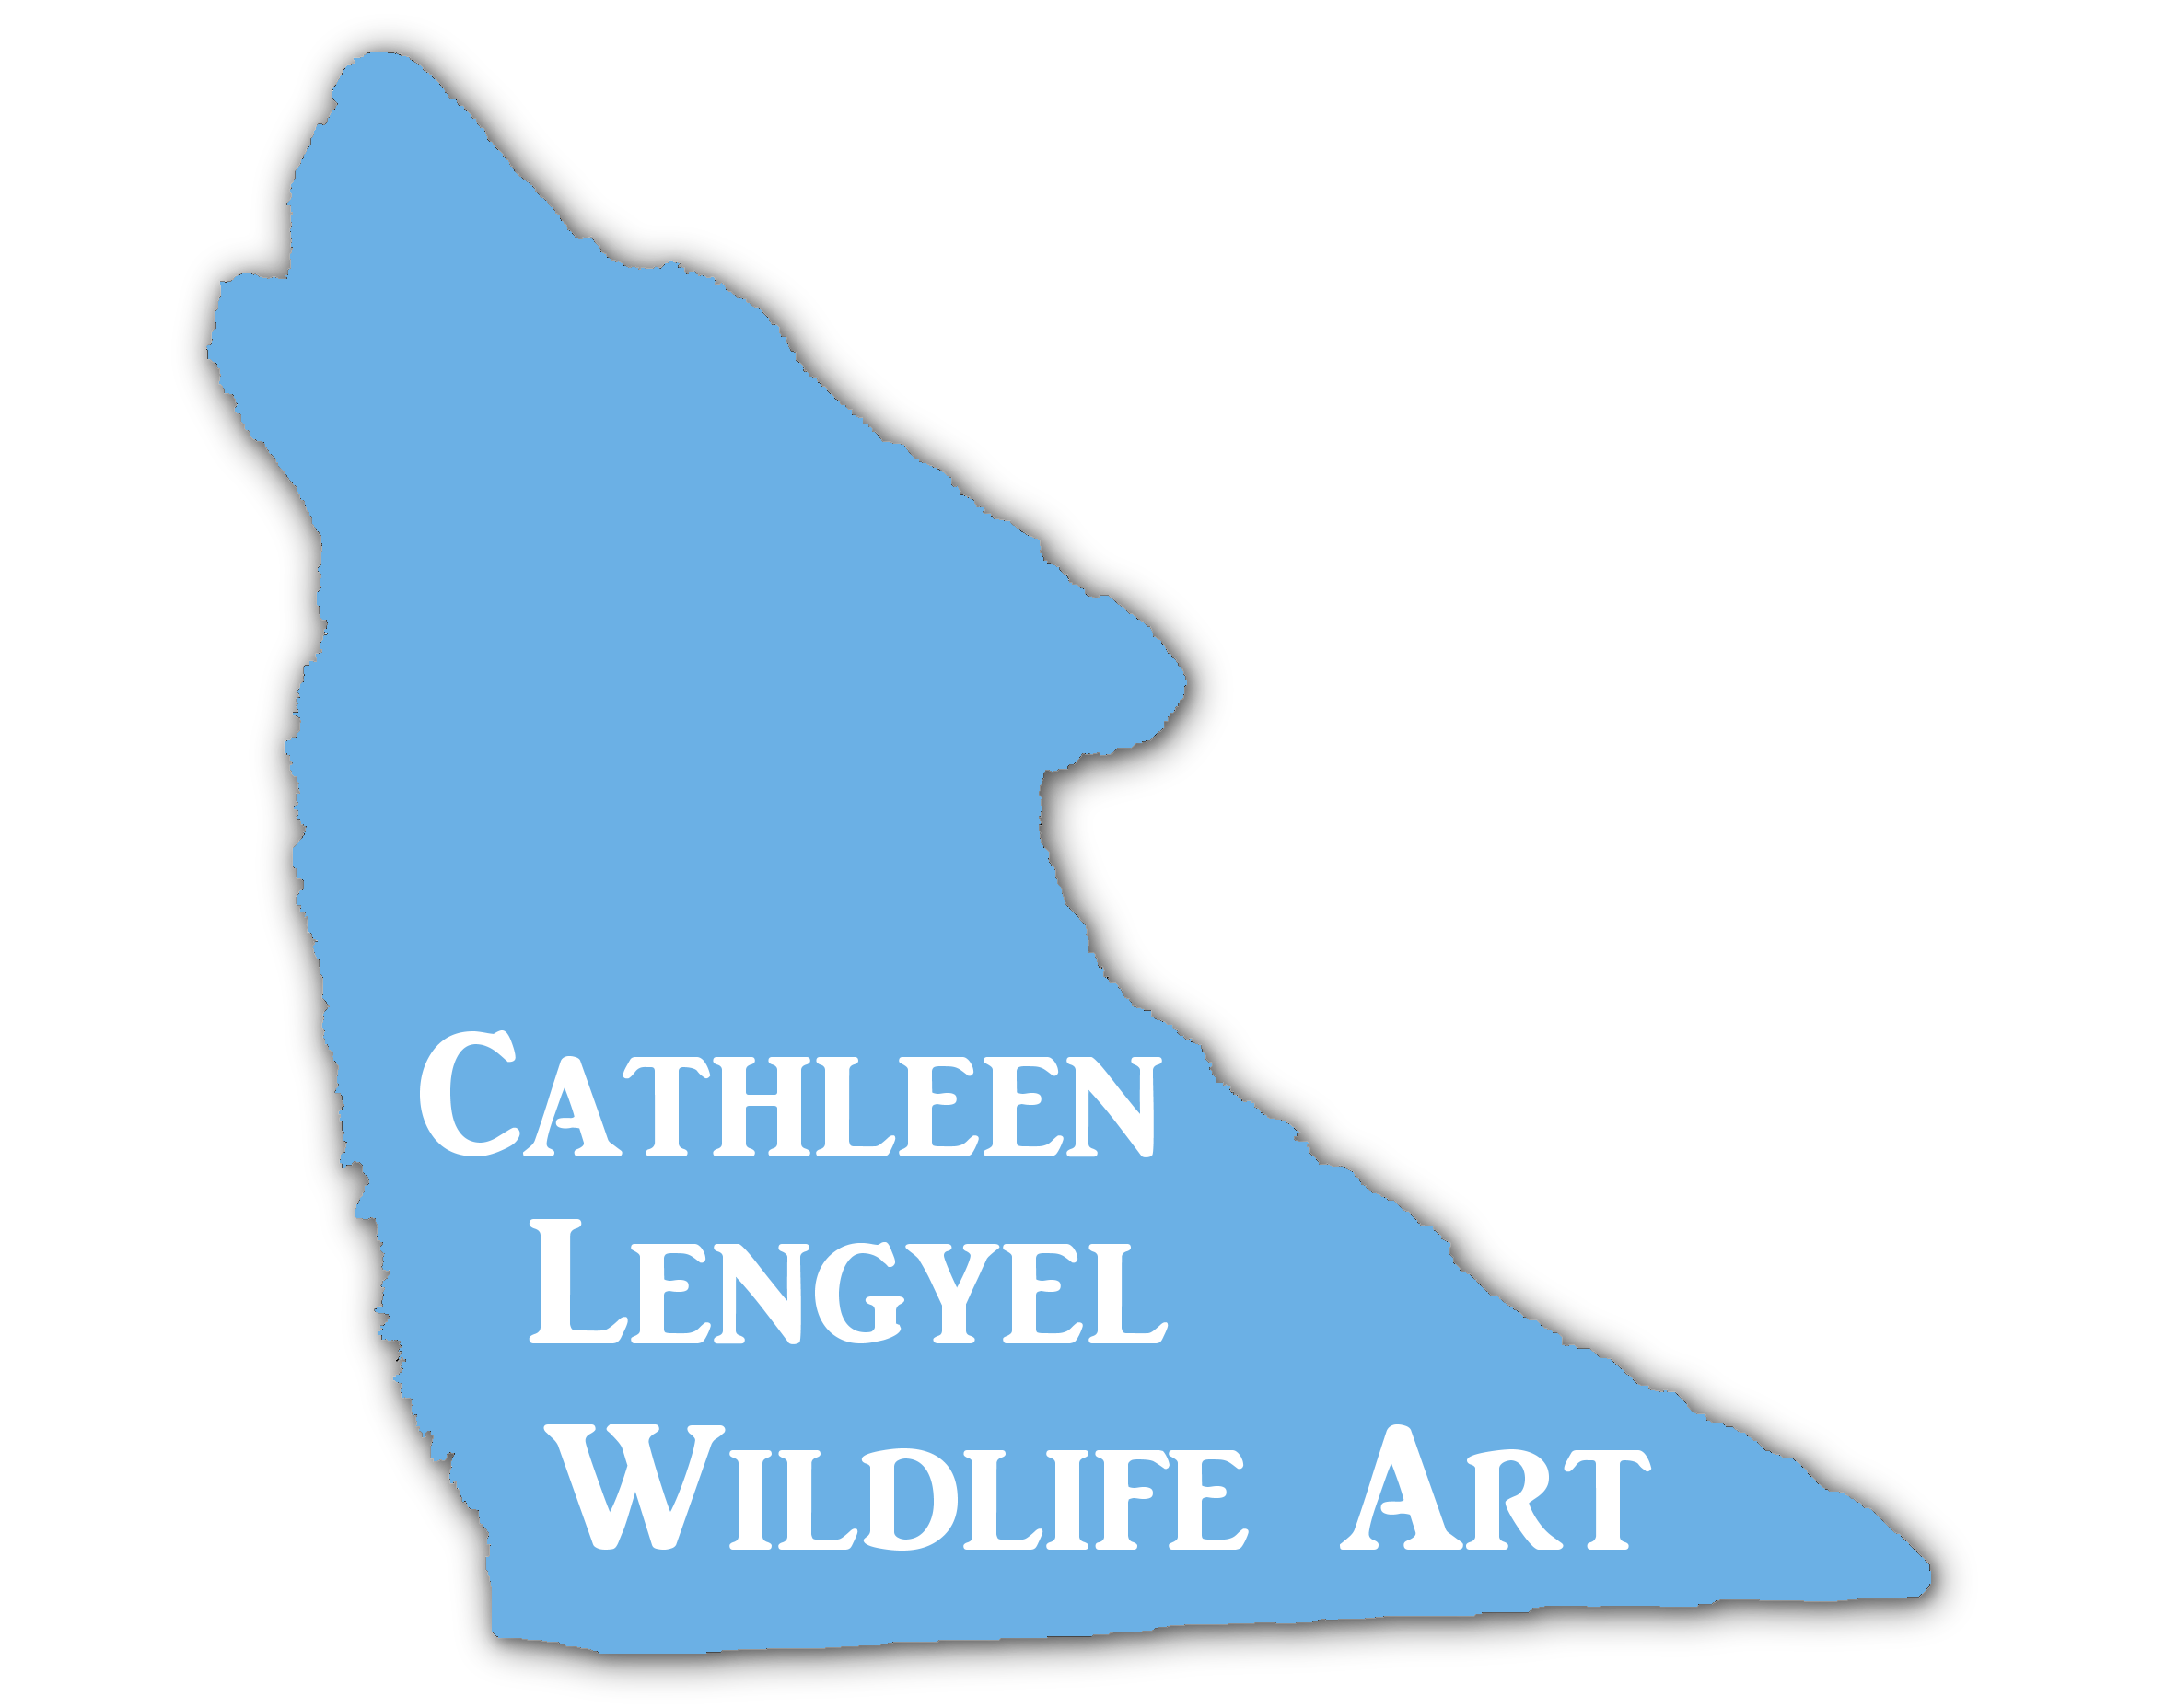 Cathleen Lengyel Wildlife Art